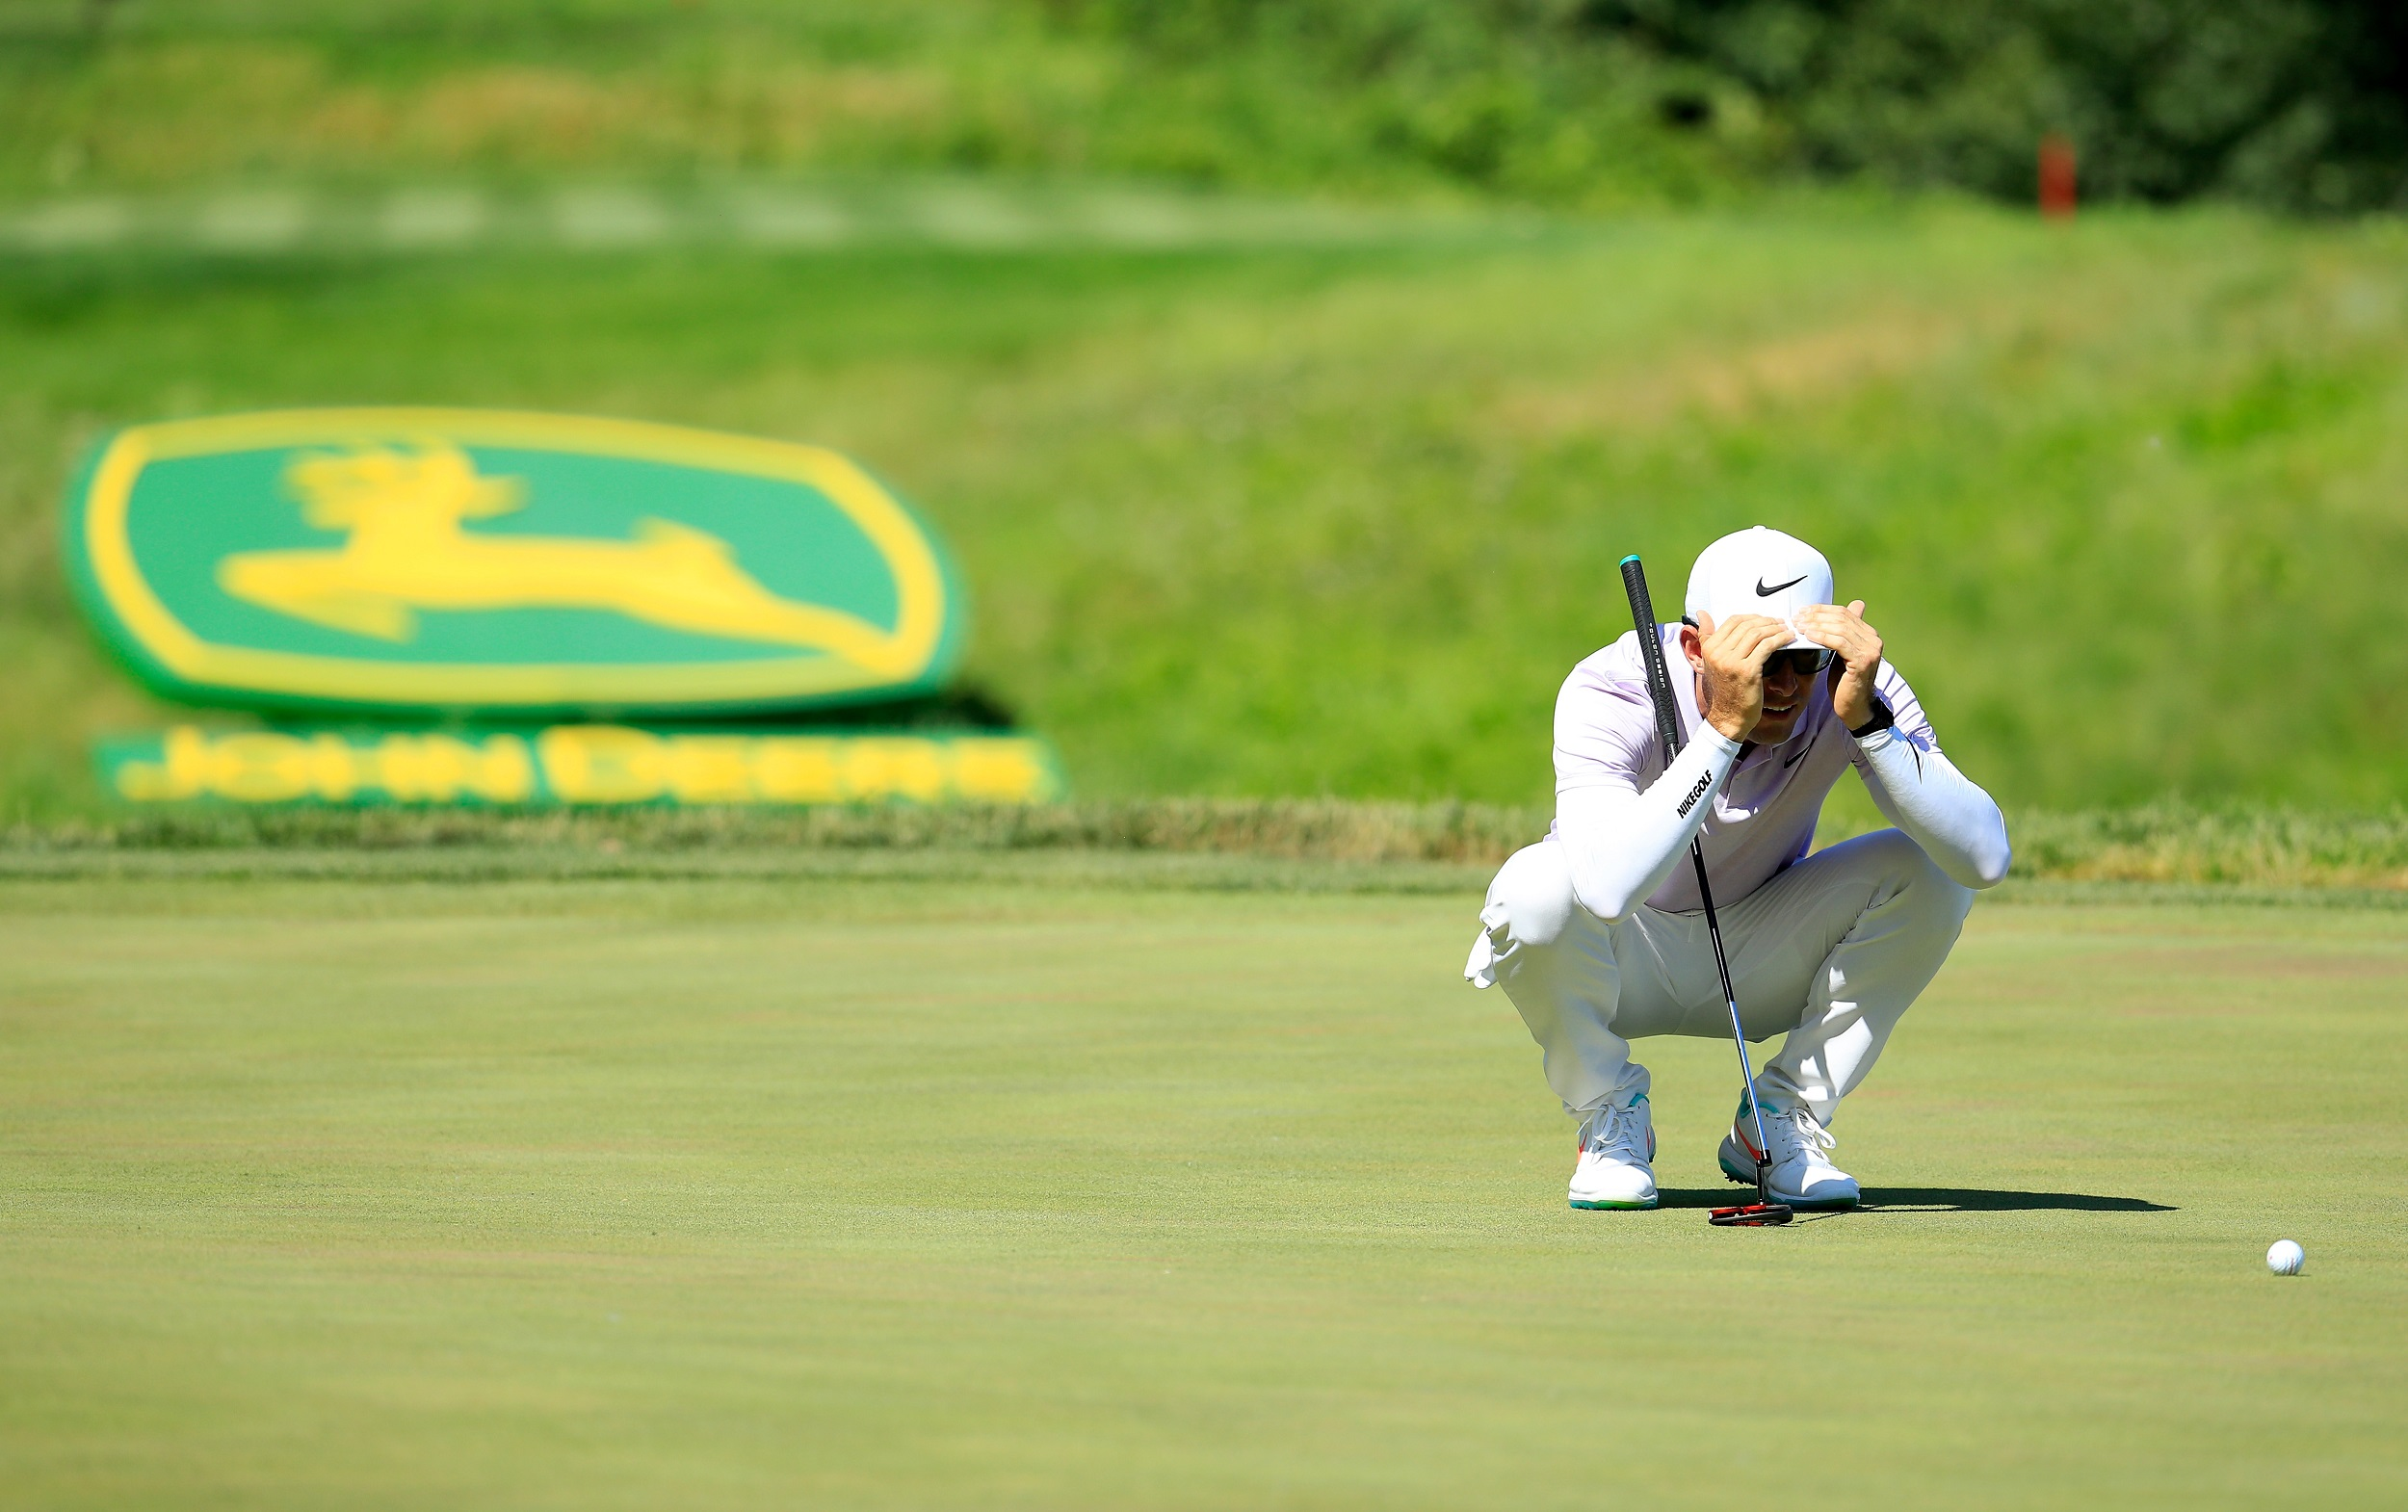 File: Dylan Frittelli of South Africa lines up a putt on the 16th green during the final round of the John Deere Classic.